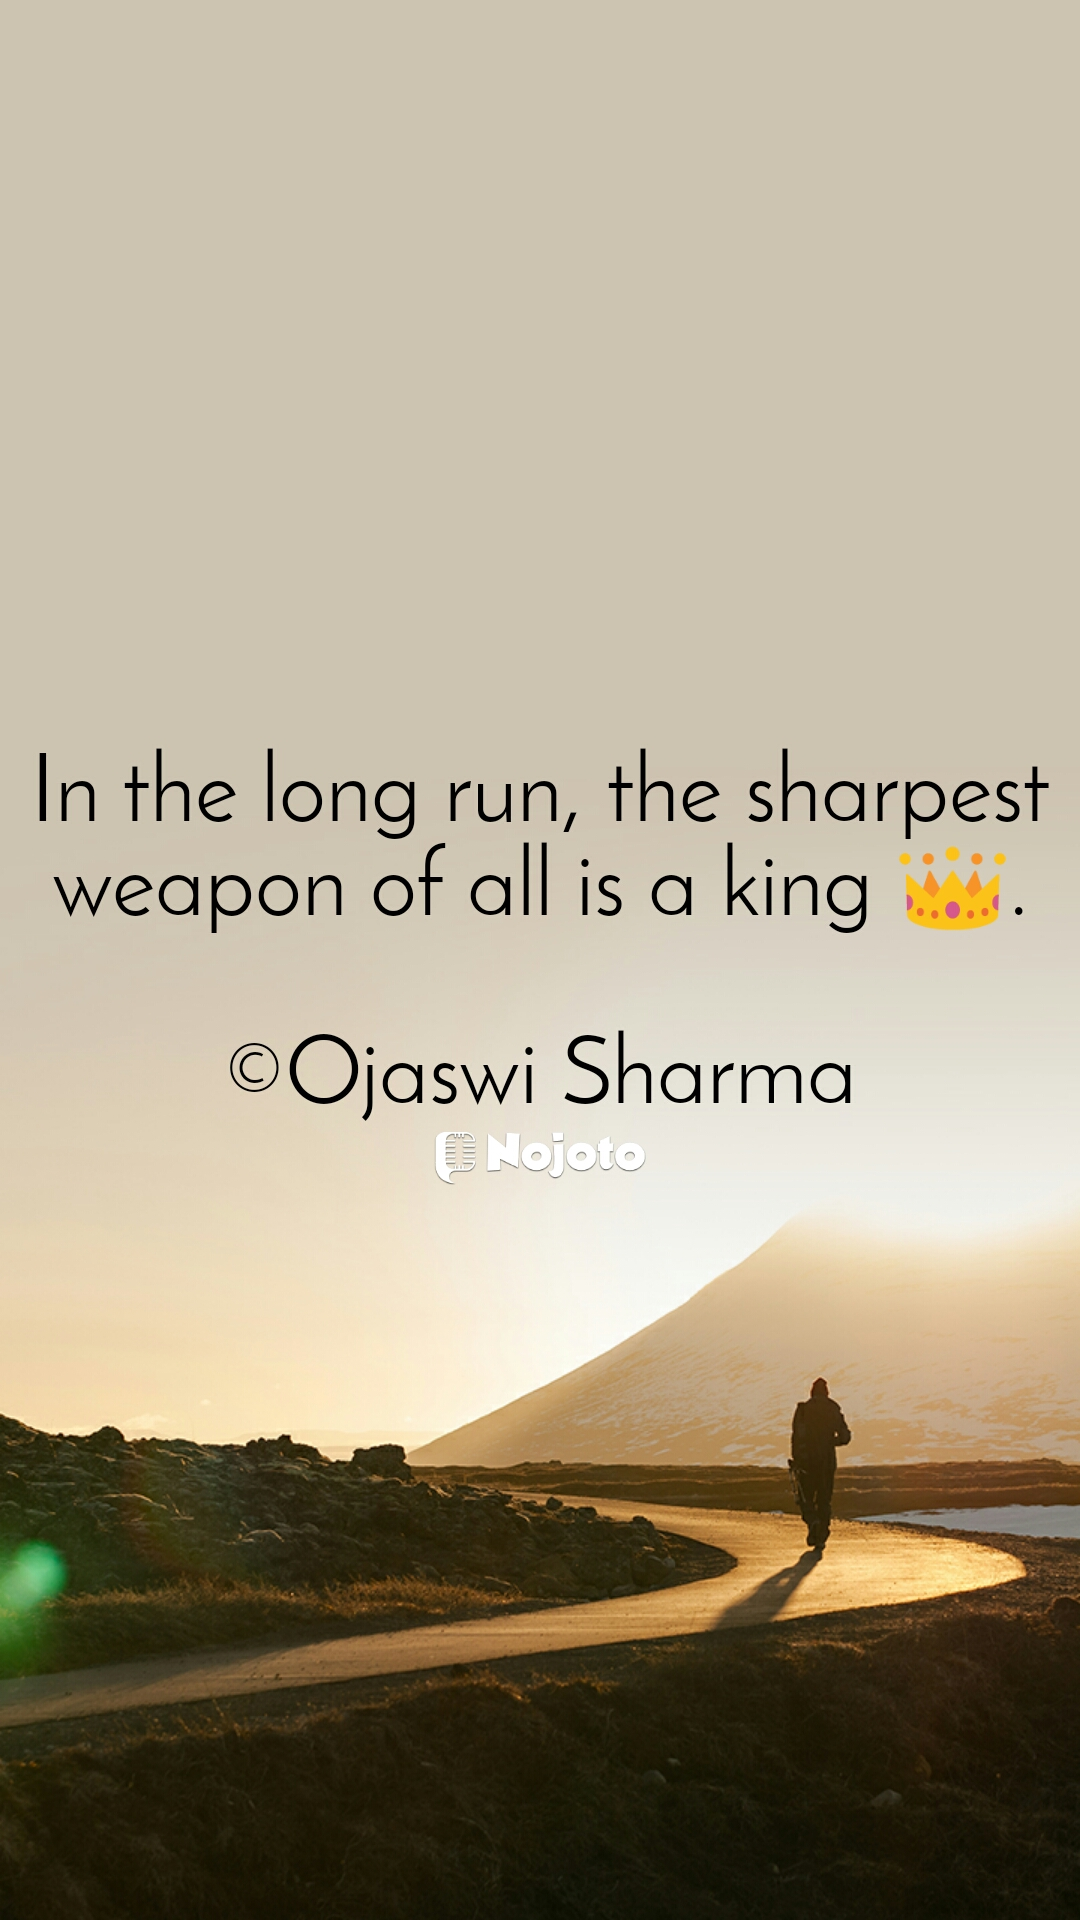 In the long run, the sharpest weapon of all is a king 👑.  ©Ojaswi Sharma